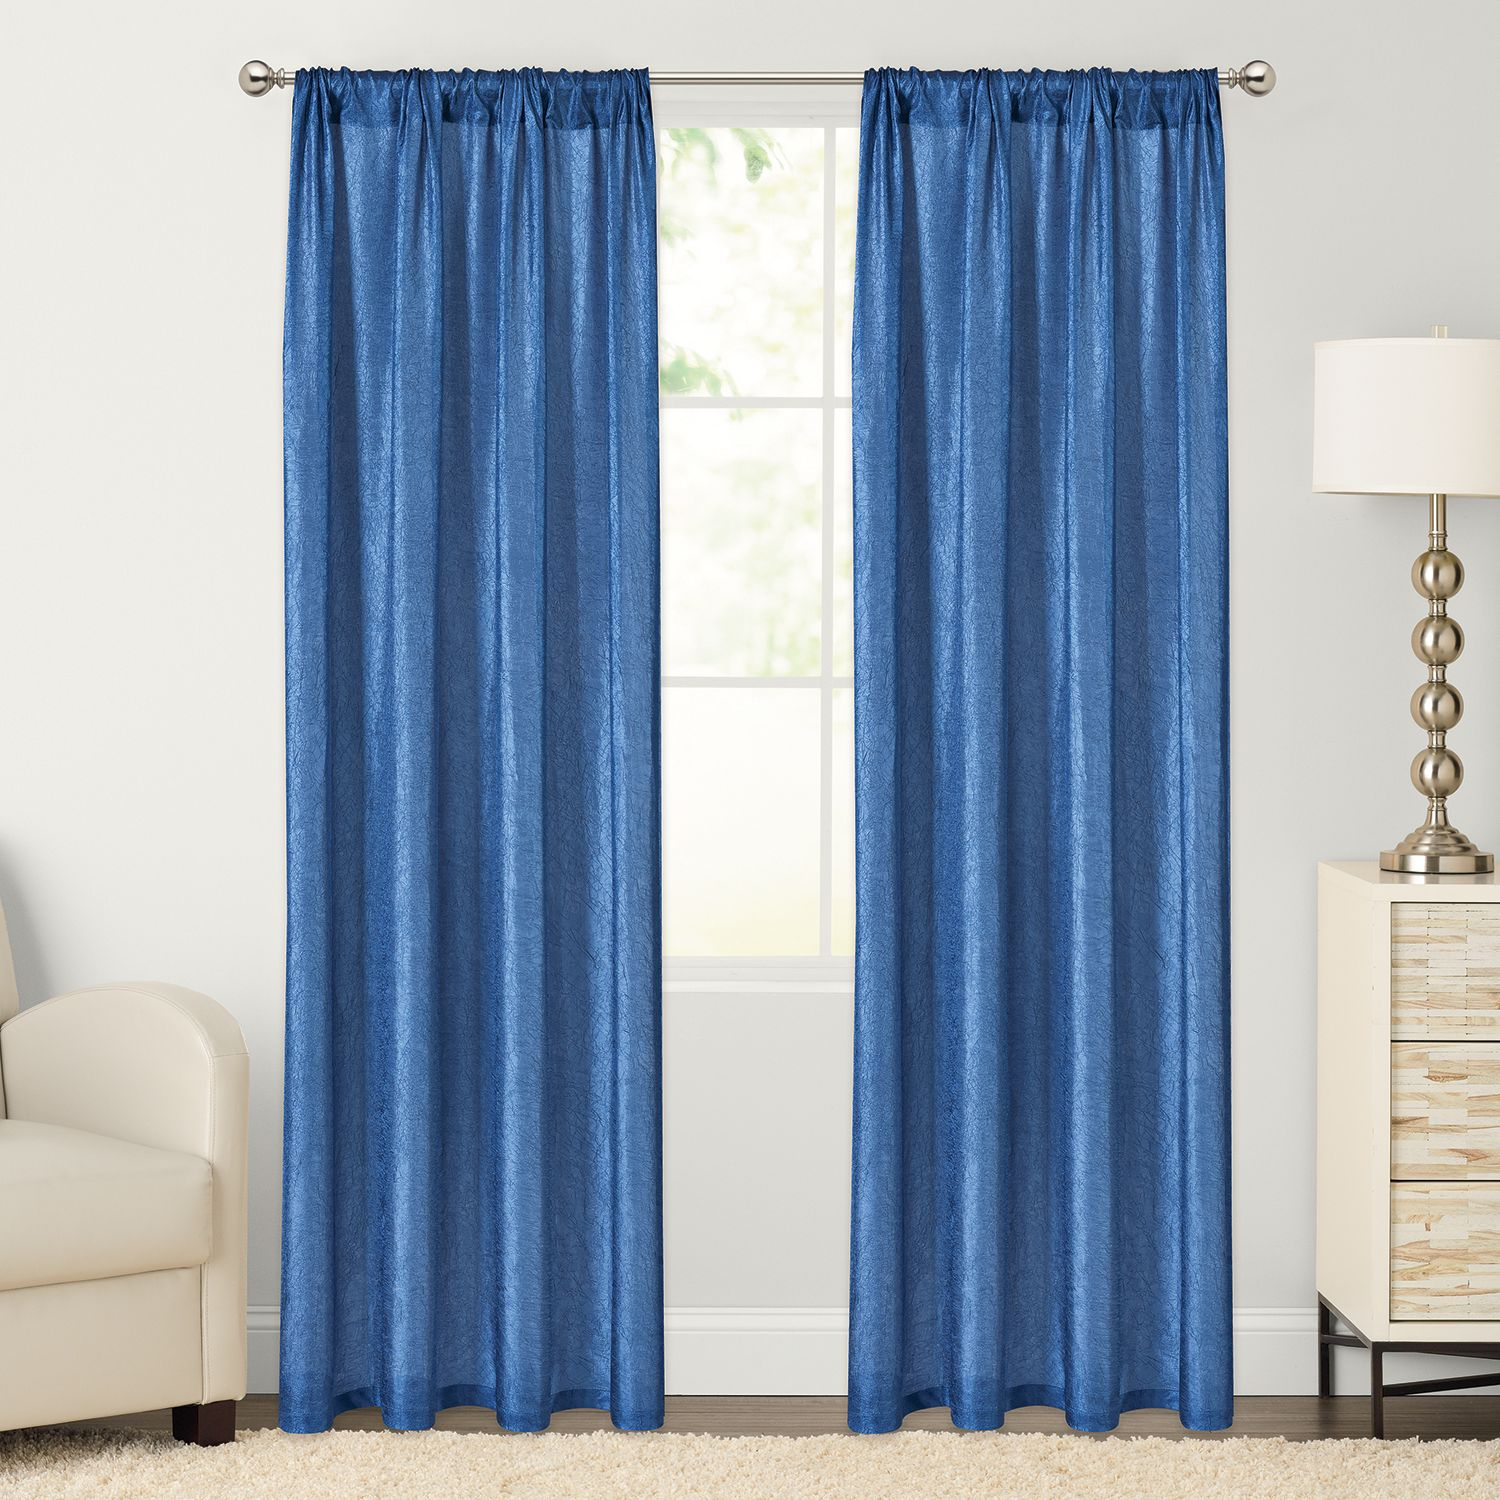 The Big One® 2 Pack Crushed Voile Sheer Window Curtains